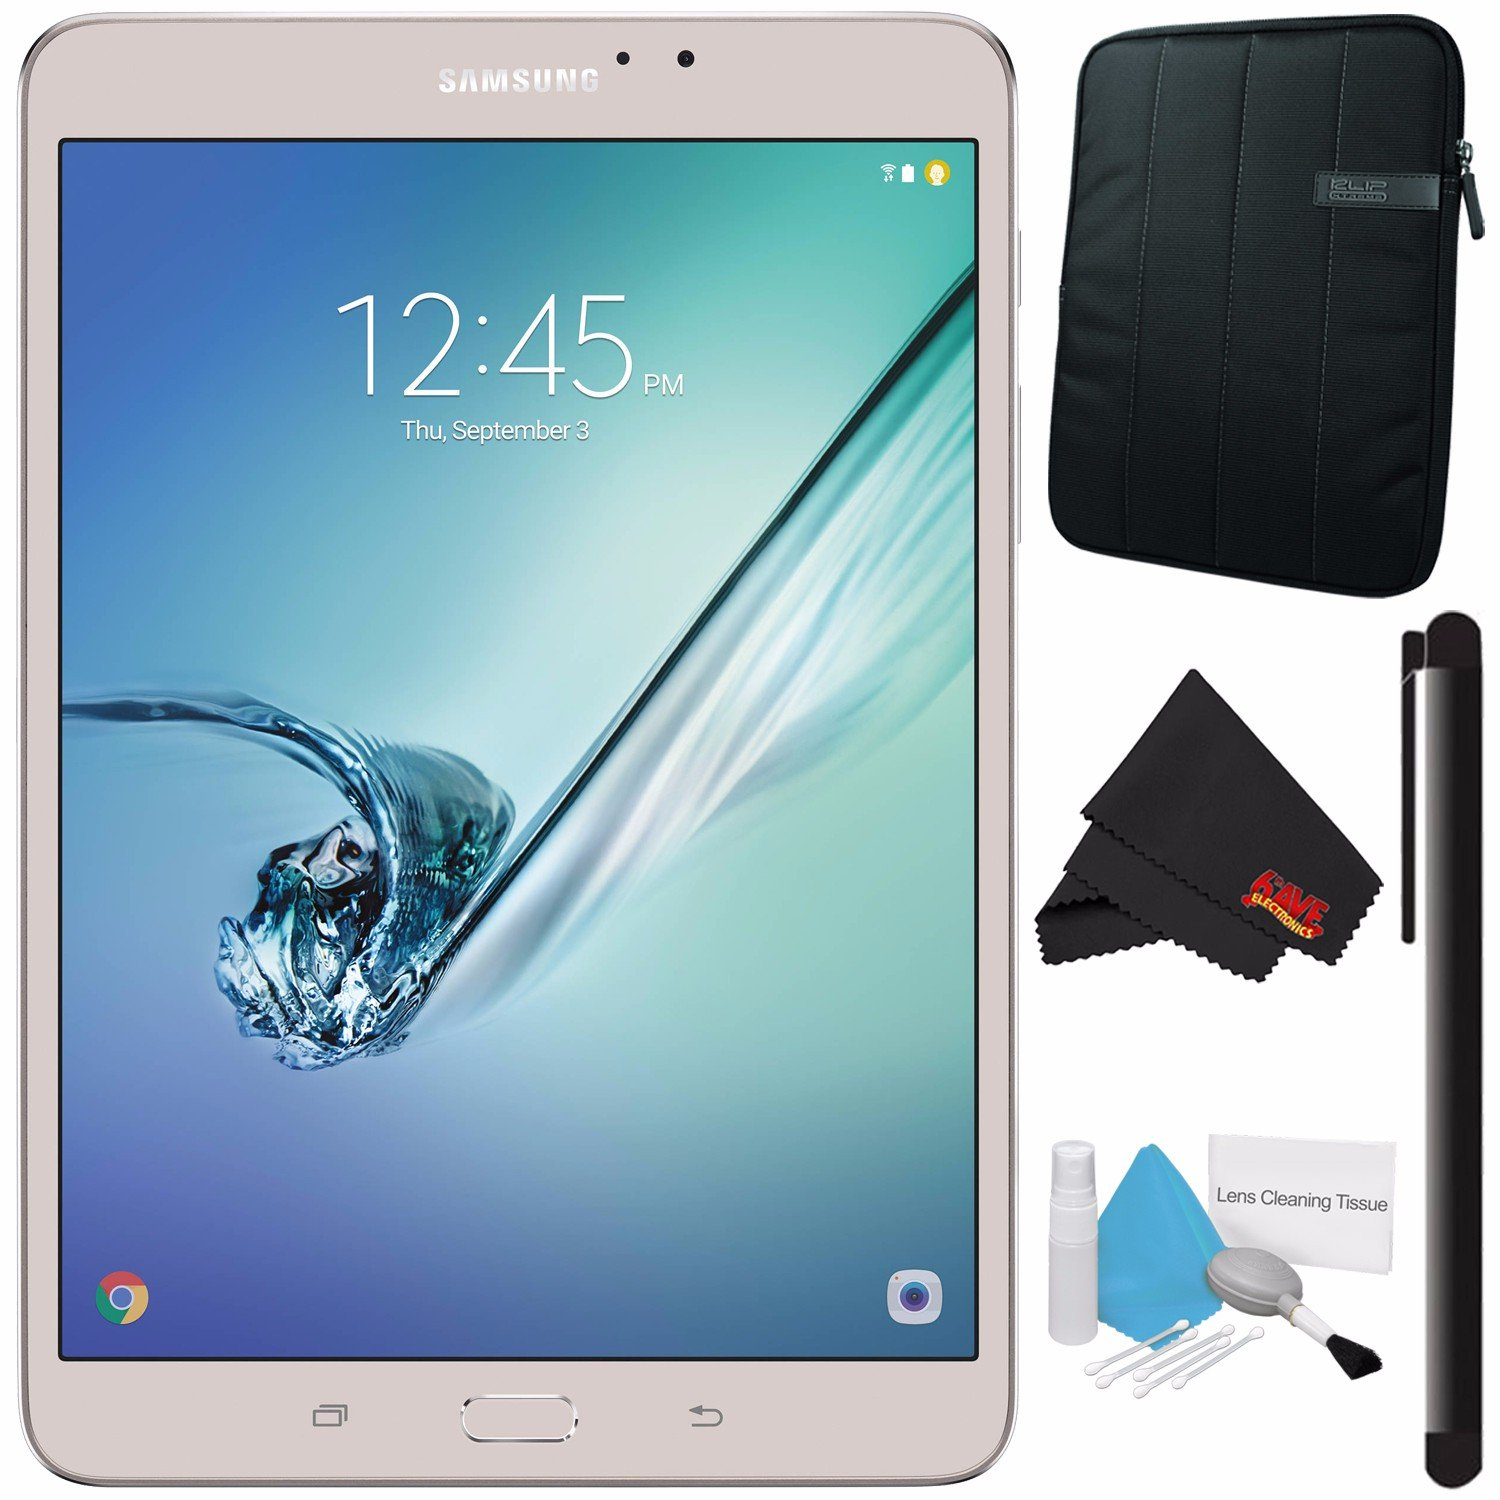 Samsung 32GB Galaxy Tab S2 8'' Wi-Fi Tablet (Gold) SM-T713NZDEXAR + Deluxe Cleaning Kit + MicroFiber Cloth + Universal Stylus for Tablets + Tablet Neoprene Sleeve 10.1'' Case (Black) Bundle by Samsung